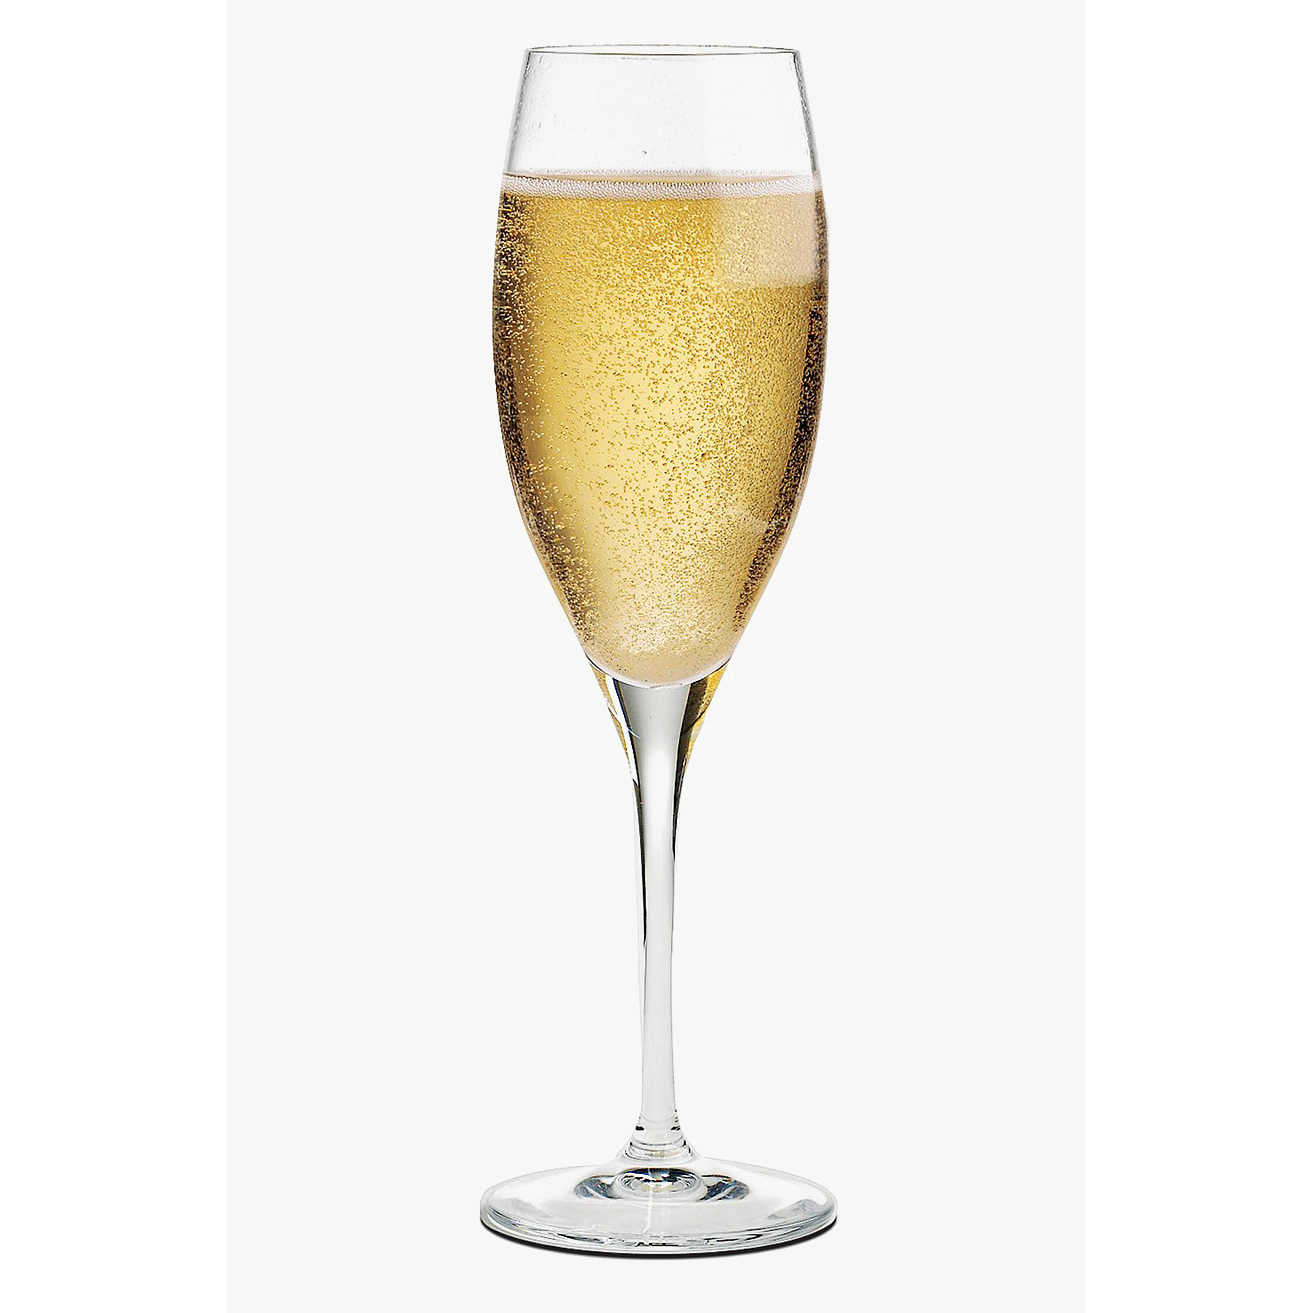 Charlemagne Sparkling Perry 75cl, Wine - Image 2